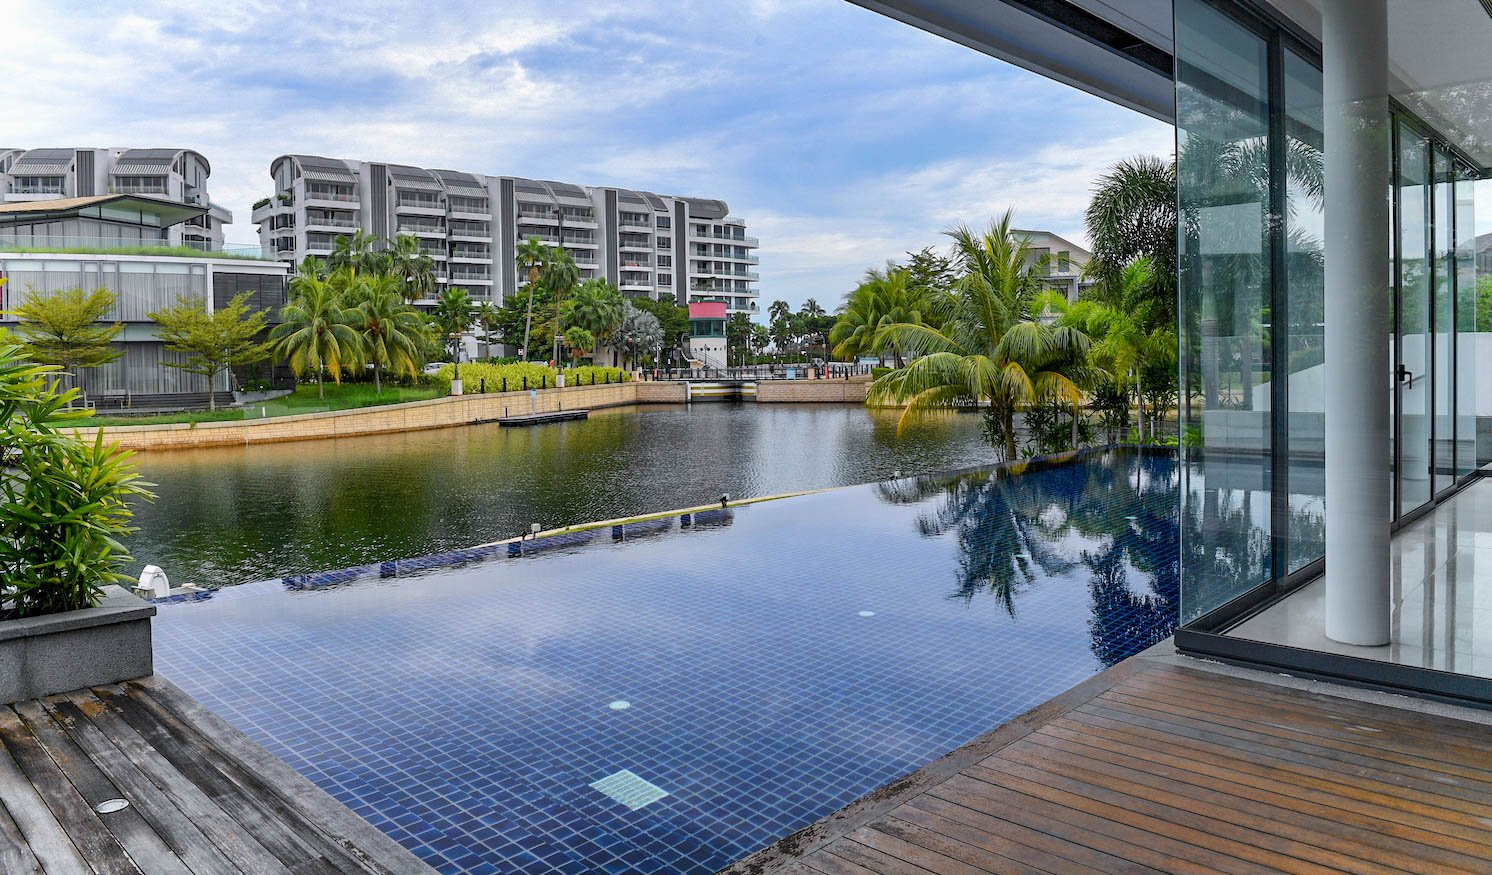 Waterfront villas at Pearl Island come with private pool